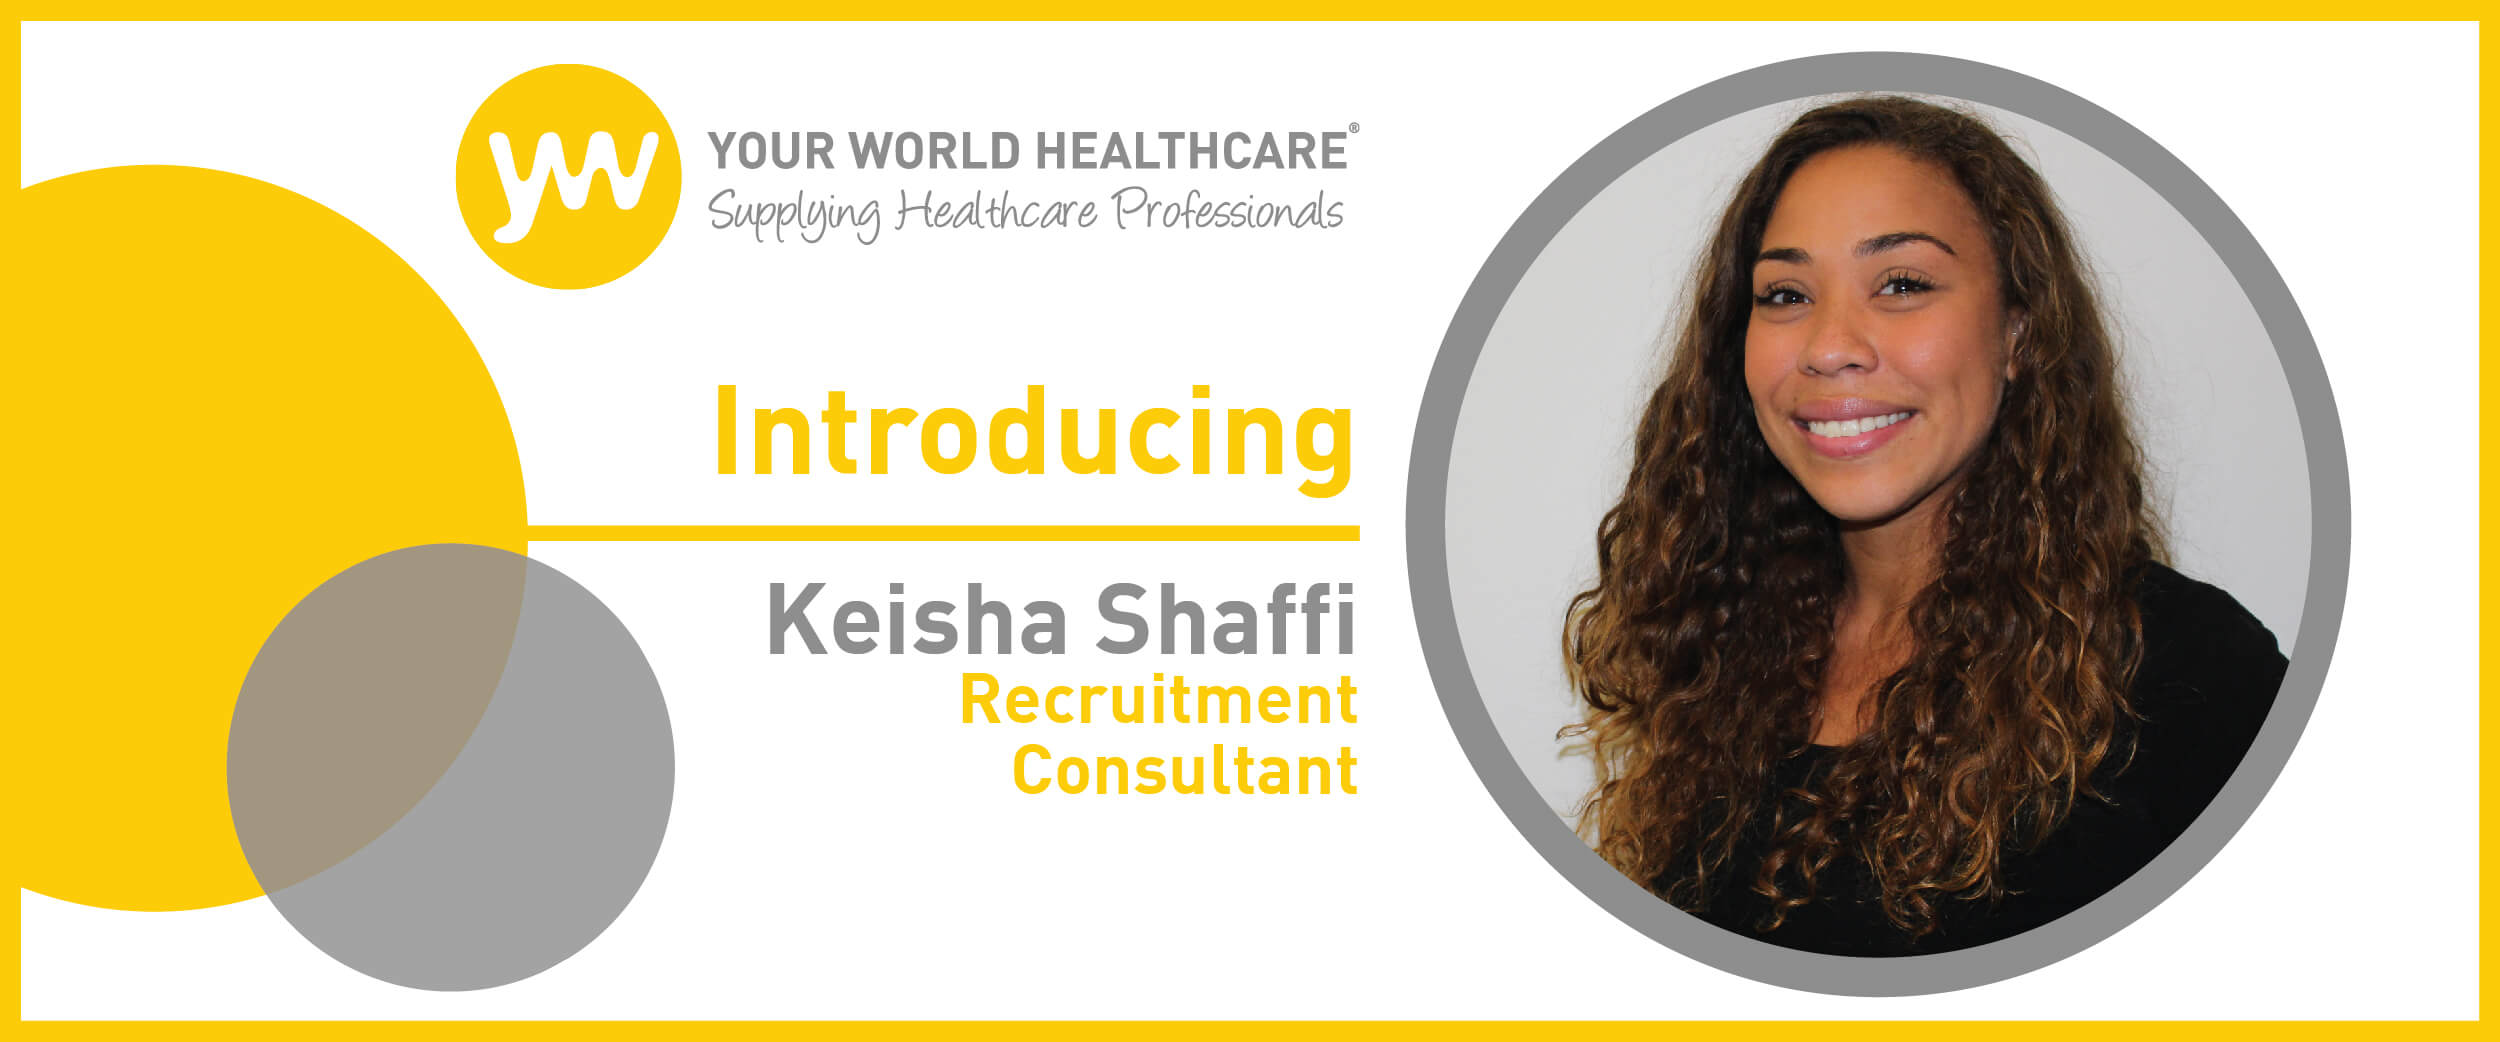 Introducing: Keisha Staffi